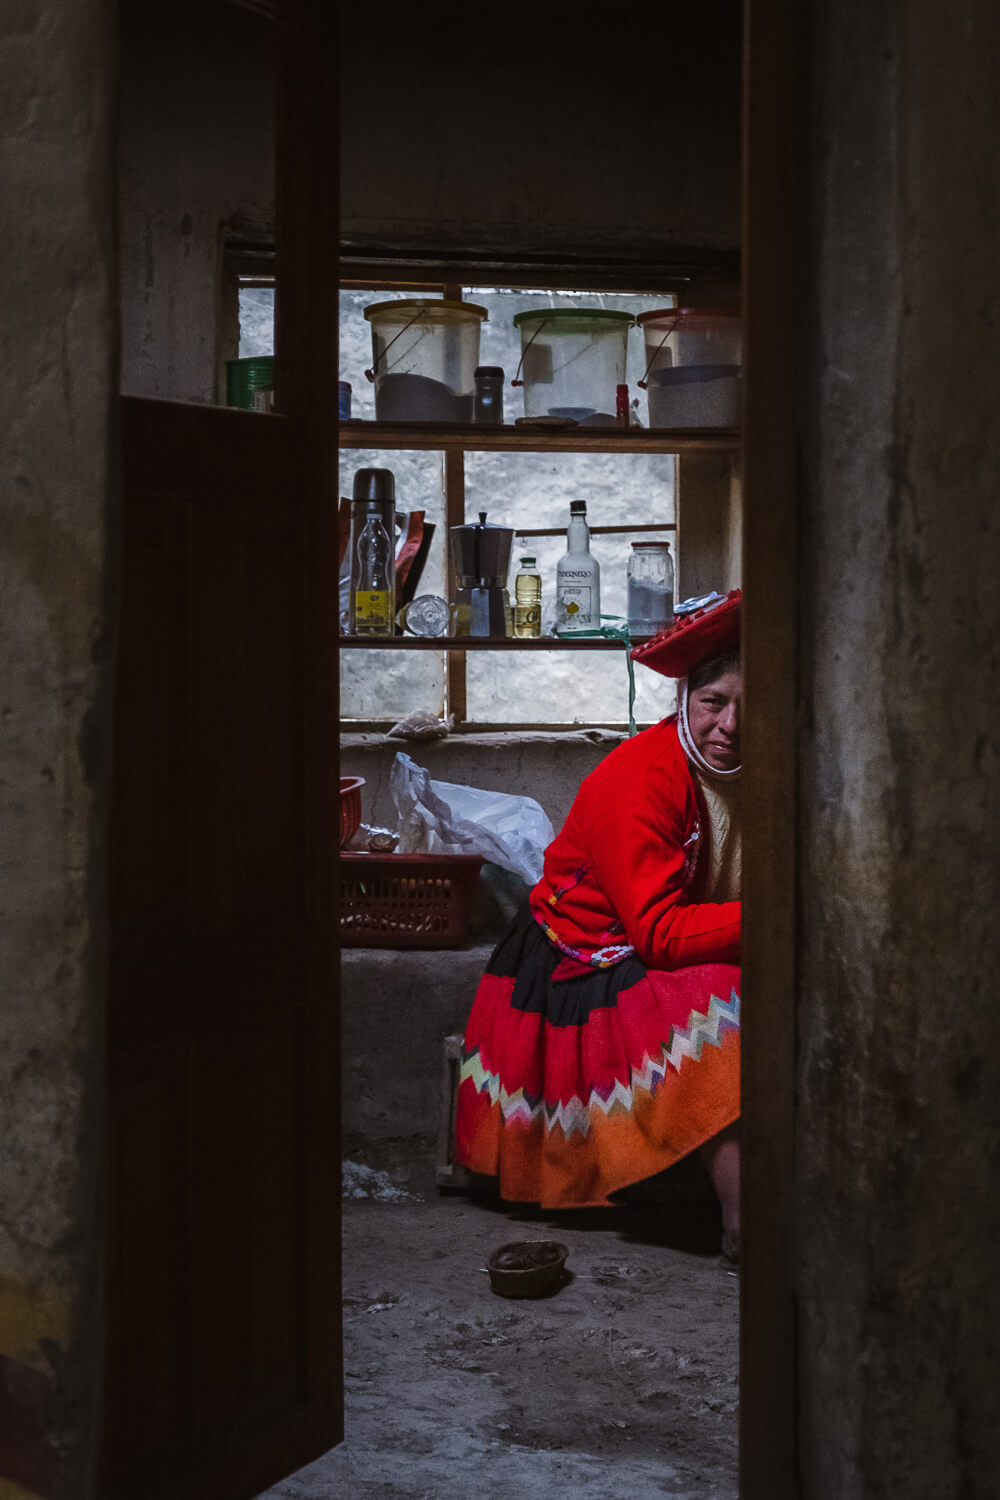 """Inside a home of the weavers of Patacancha, The Sacred Valley, Peru. Travel photography and guide by © Natasha Lequepeys for """"And Then I Met Yoko"""". #peru #sacredvalley #patacancha #photoblog #travelblog #travelphotography #portraitphotography #travelitinerary #fujifilm #weaving #tradition #culture #people #andes #village #weavingdemonstration #cusco #ollantaytambo #travel #travelperu"""